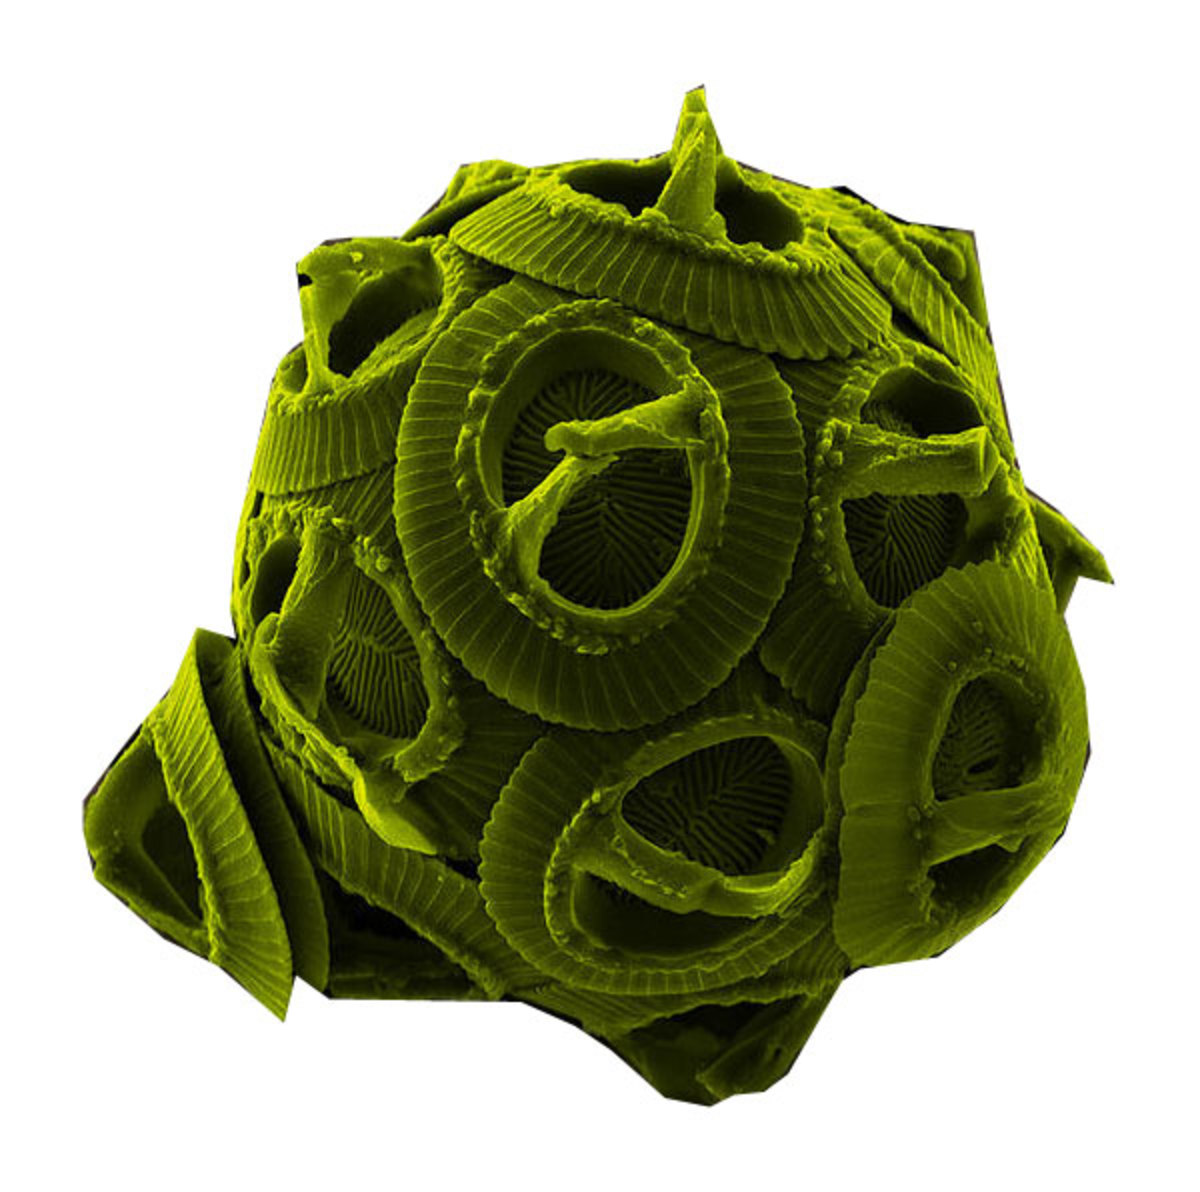 A single-celled alga viewed through a very powerful electron microscope. This one is a sea dweller, but many similar kinds live in freshwater ponds and lakes.